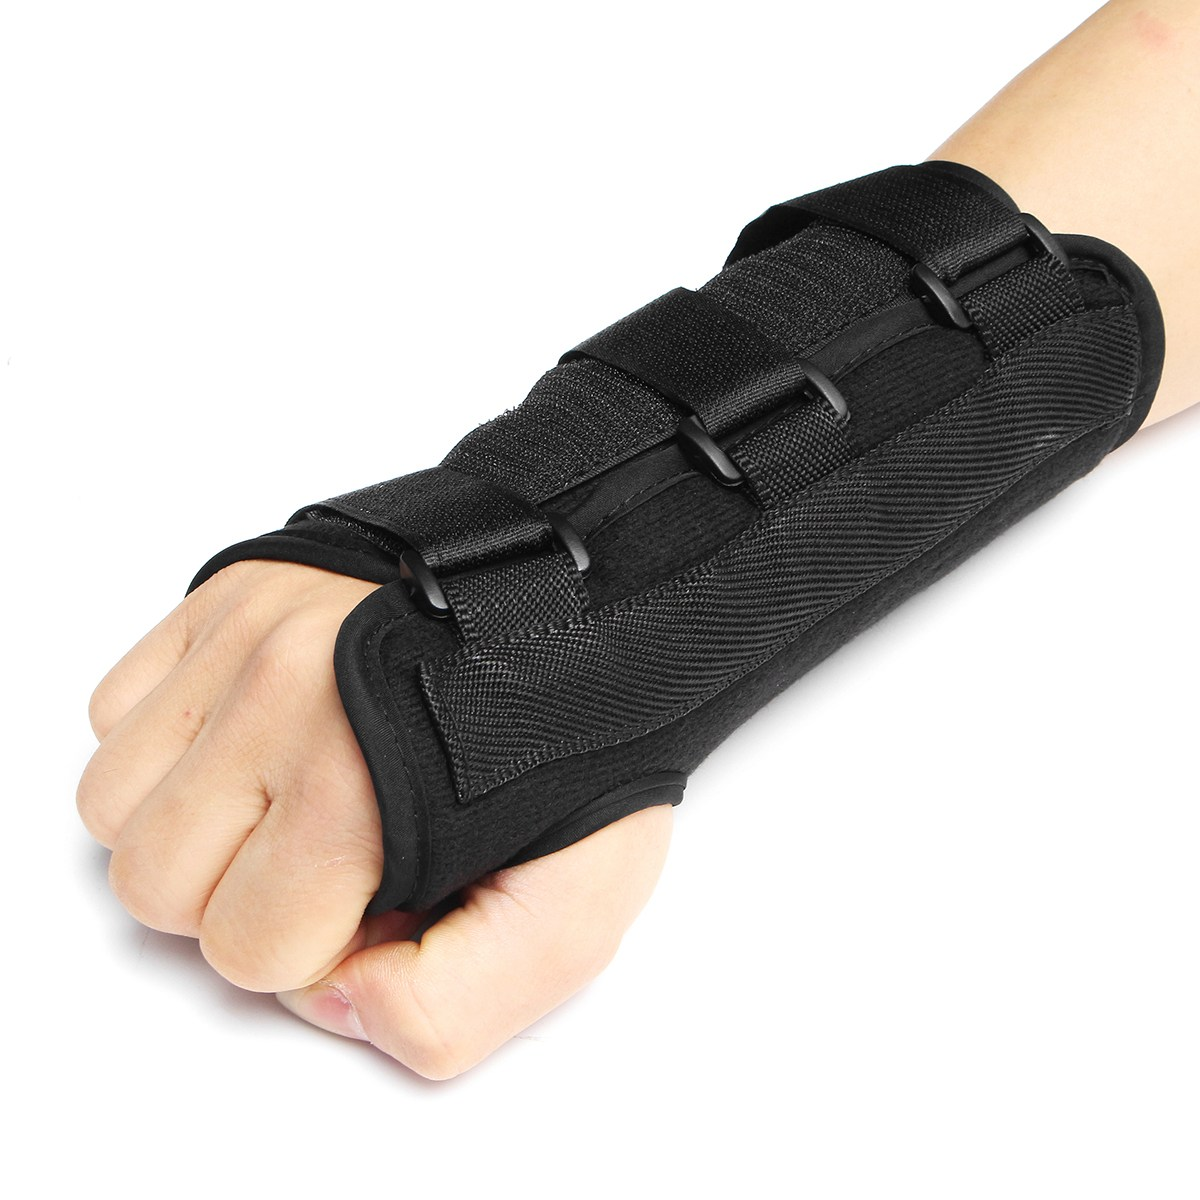 Image result for wrist brace for sprain